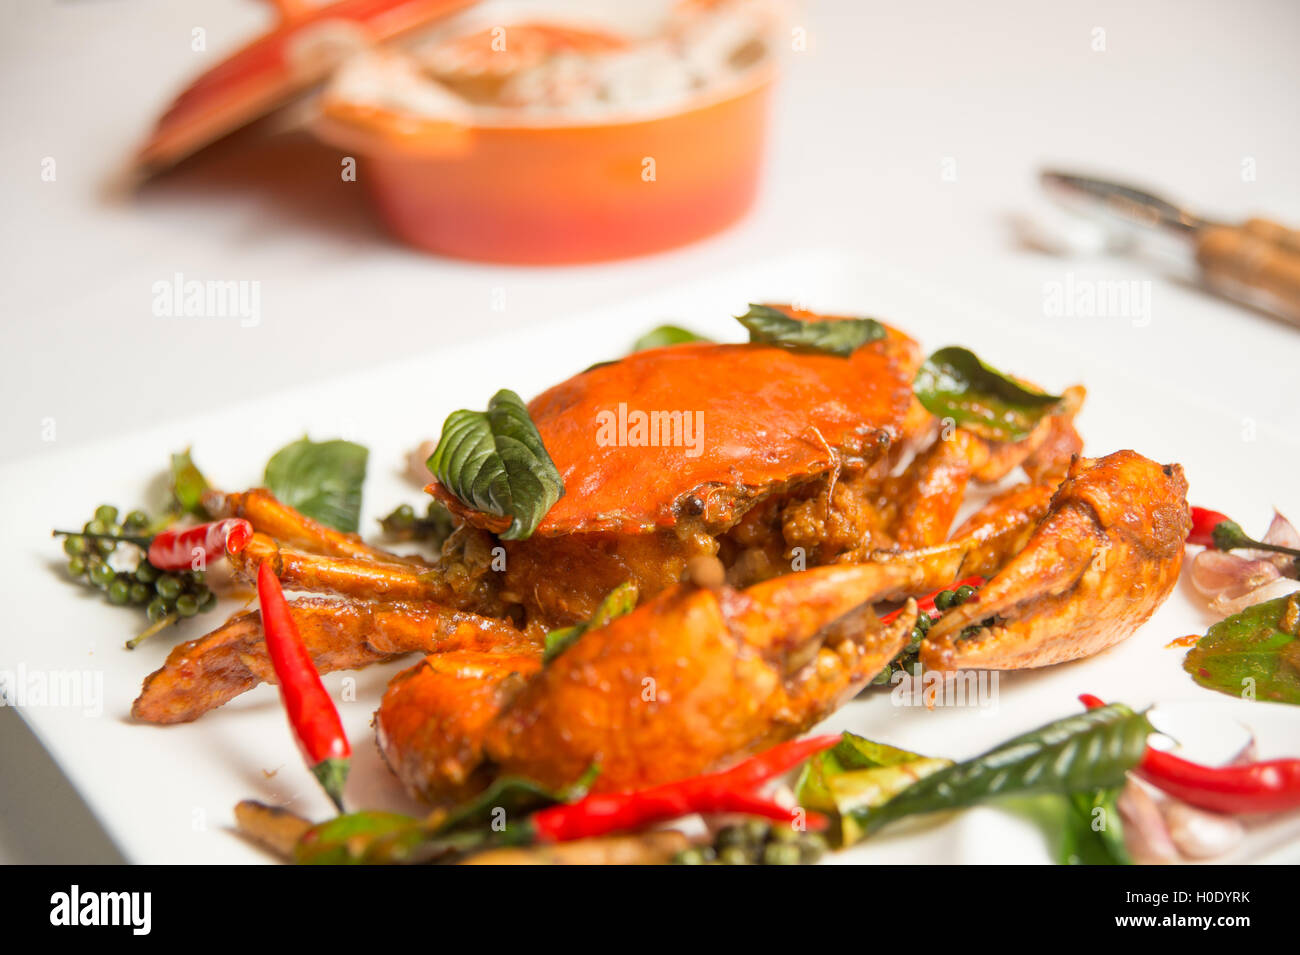 Wok fried crab with chilli and sweet Thai basil horizontal - Stock Image